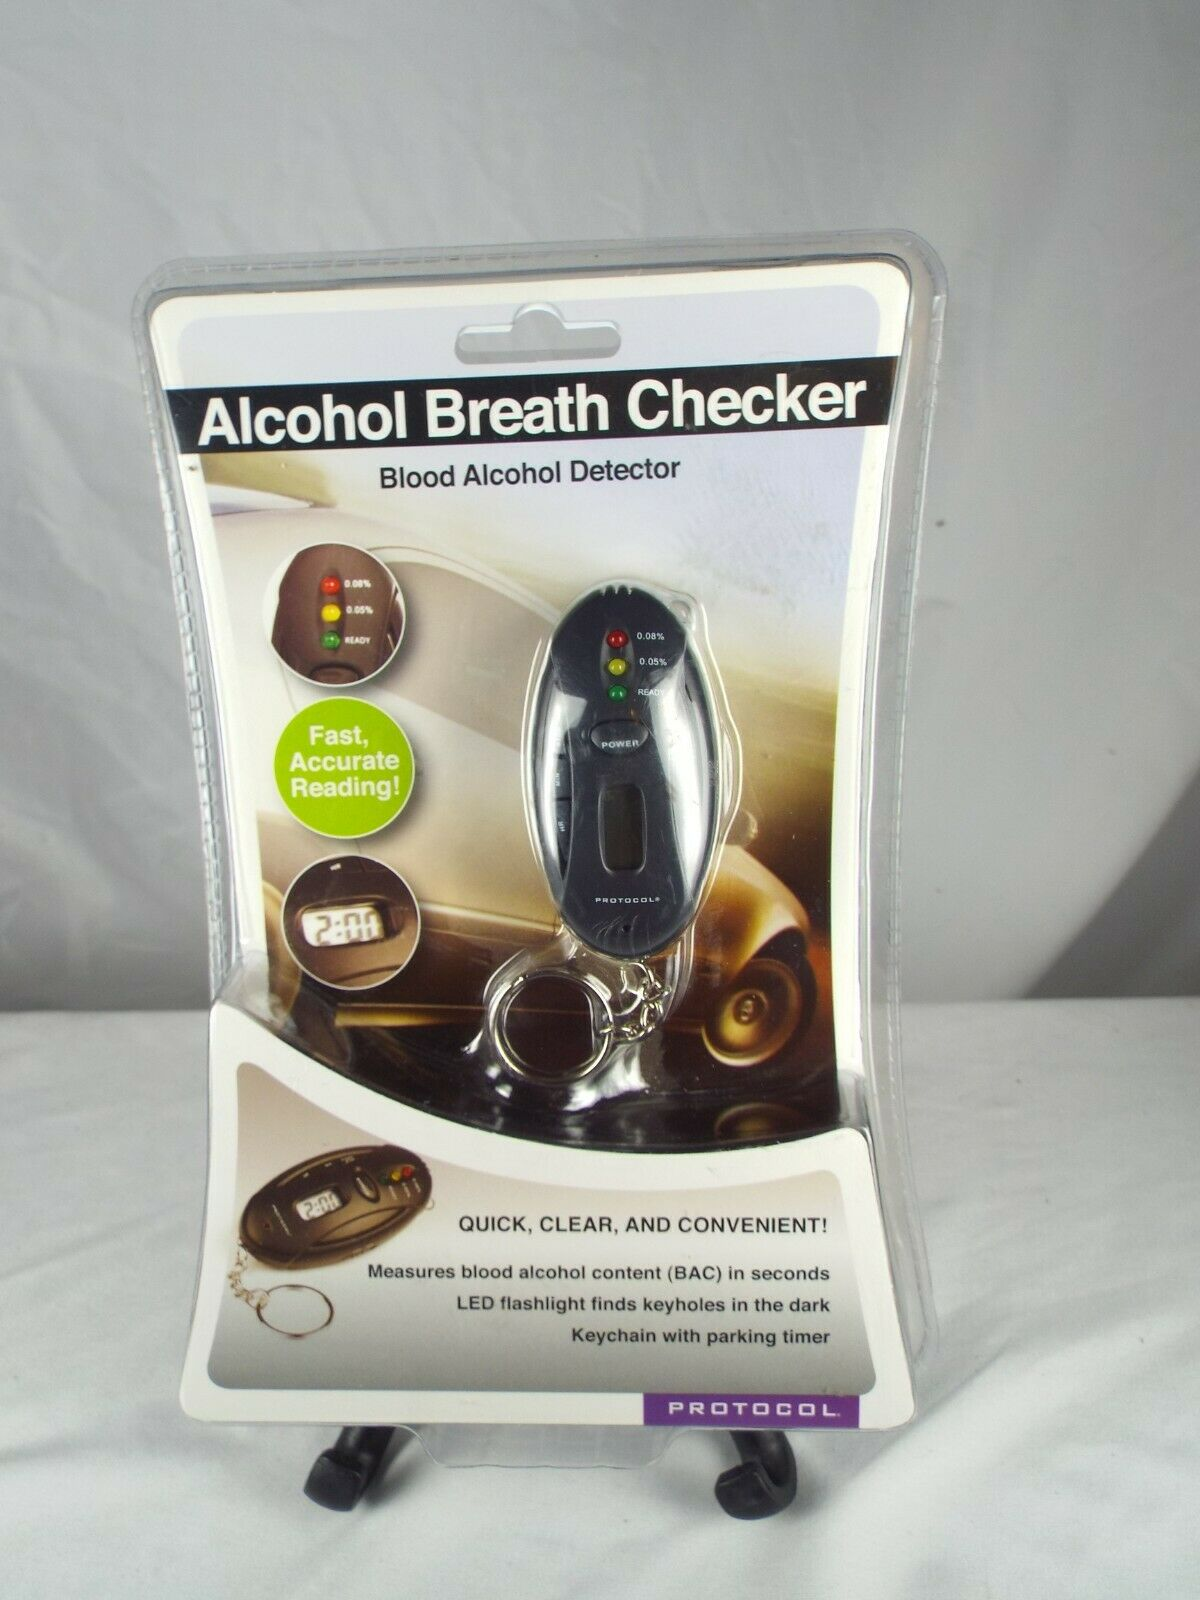 PROTOCOL Digital Keychain Blood Alcohol Breath Checker Detec